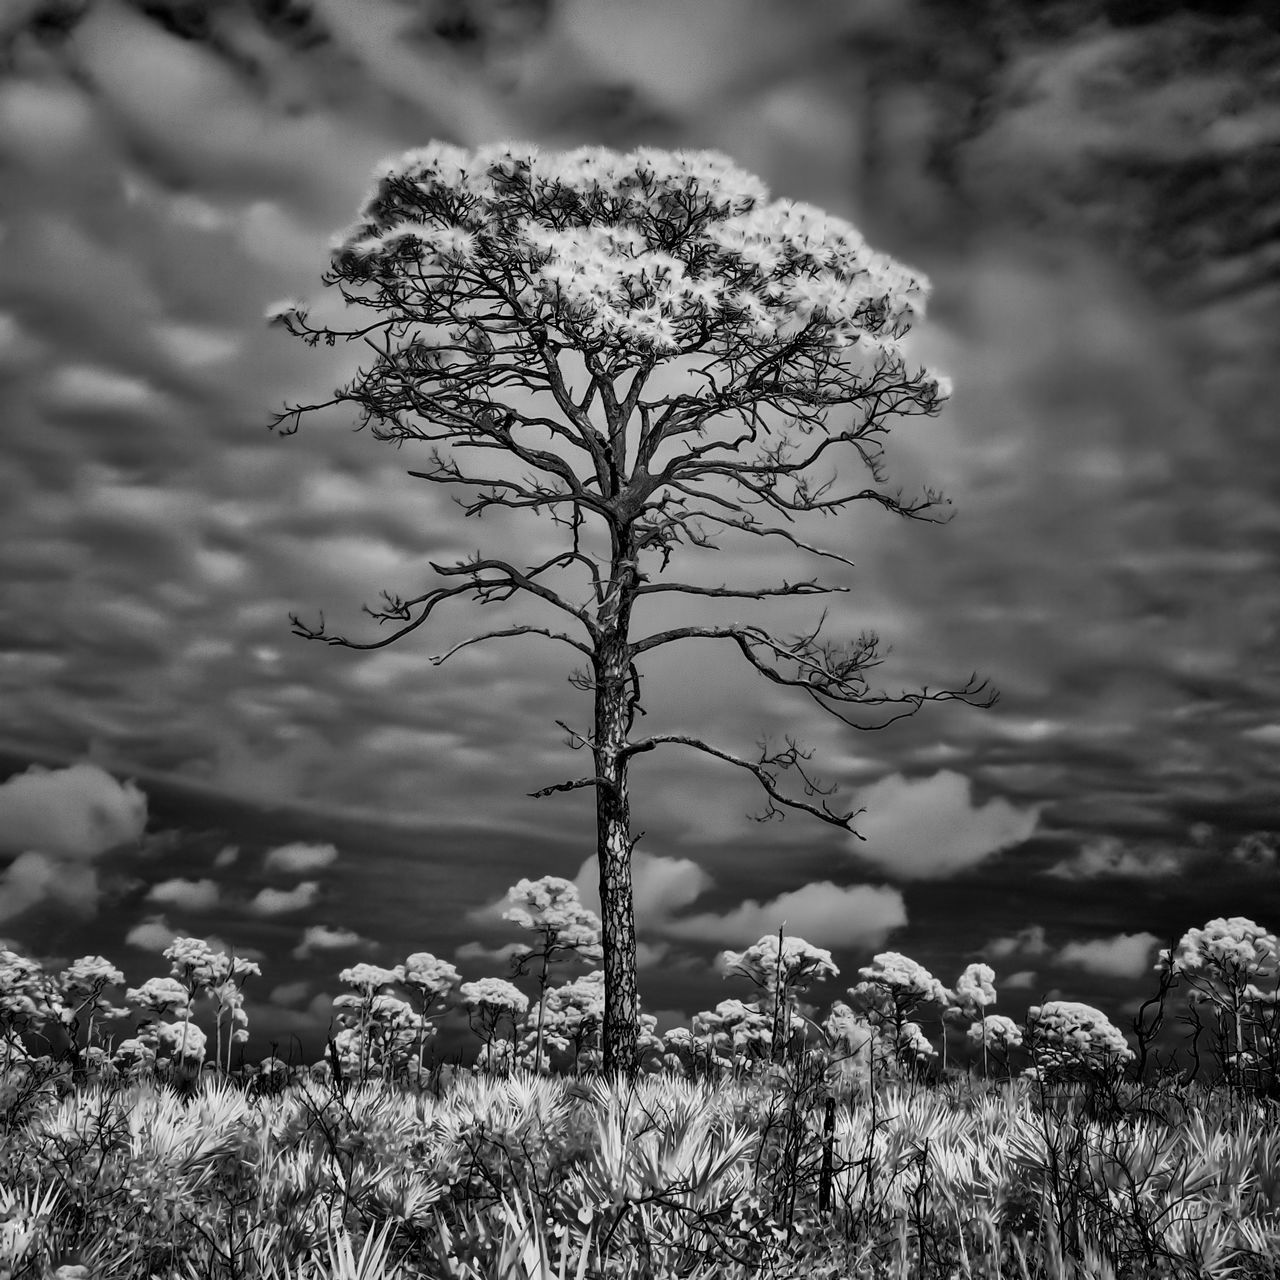 Florida Infrared Photography Jonathan Dickinson State Park Lone Pine Cone Minimimalist Pine Scru Squarecrop Taking Photos Thegreatoutdoors-2016eyeemawards The Great Outdoors - 2016 EyeEm Awards Fine Art Photography